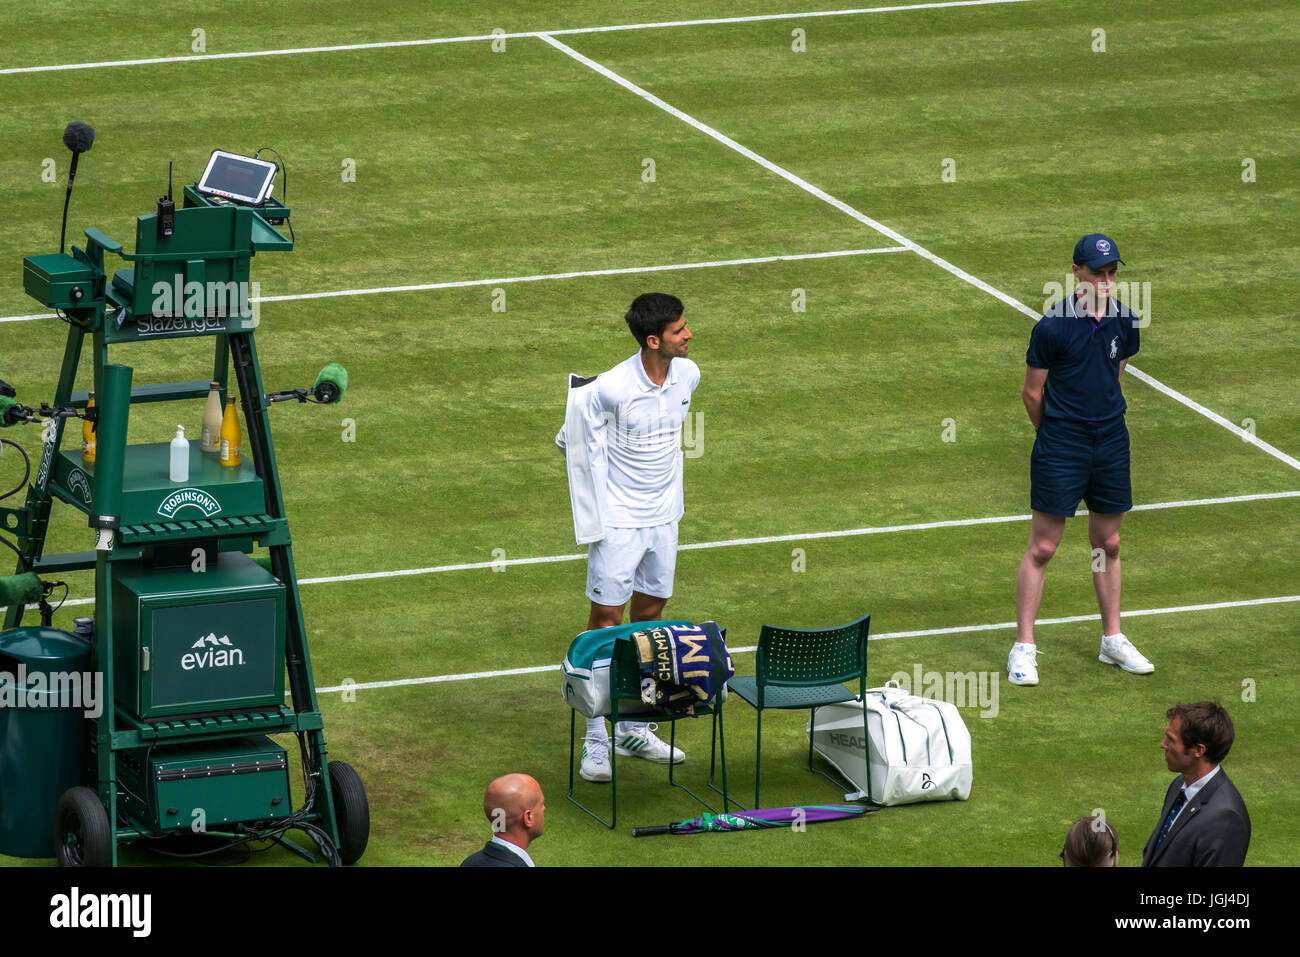 Novak Djokovic takes off jacket on Centre court, grand slam match against Martin Klizan Wimbledon tennis championship - Stock Image